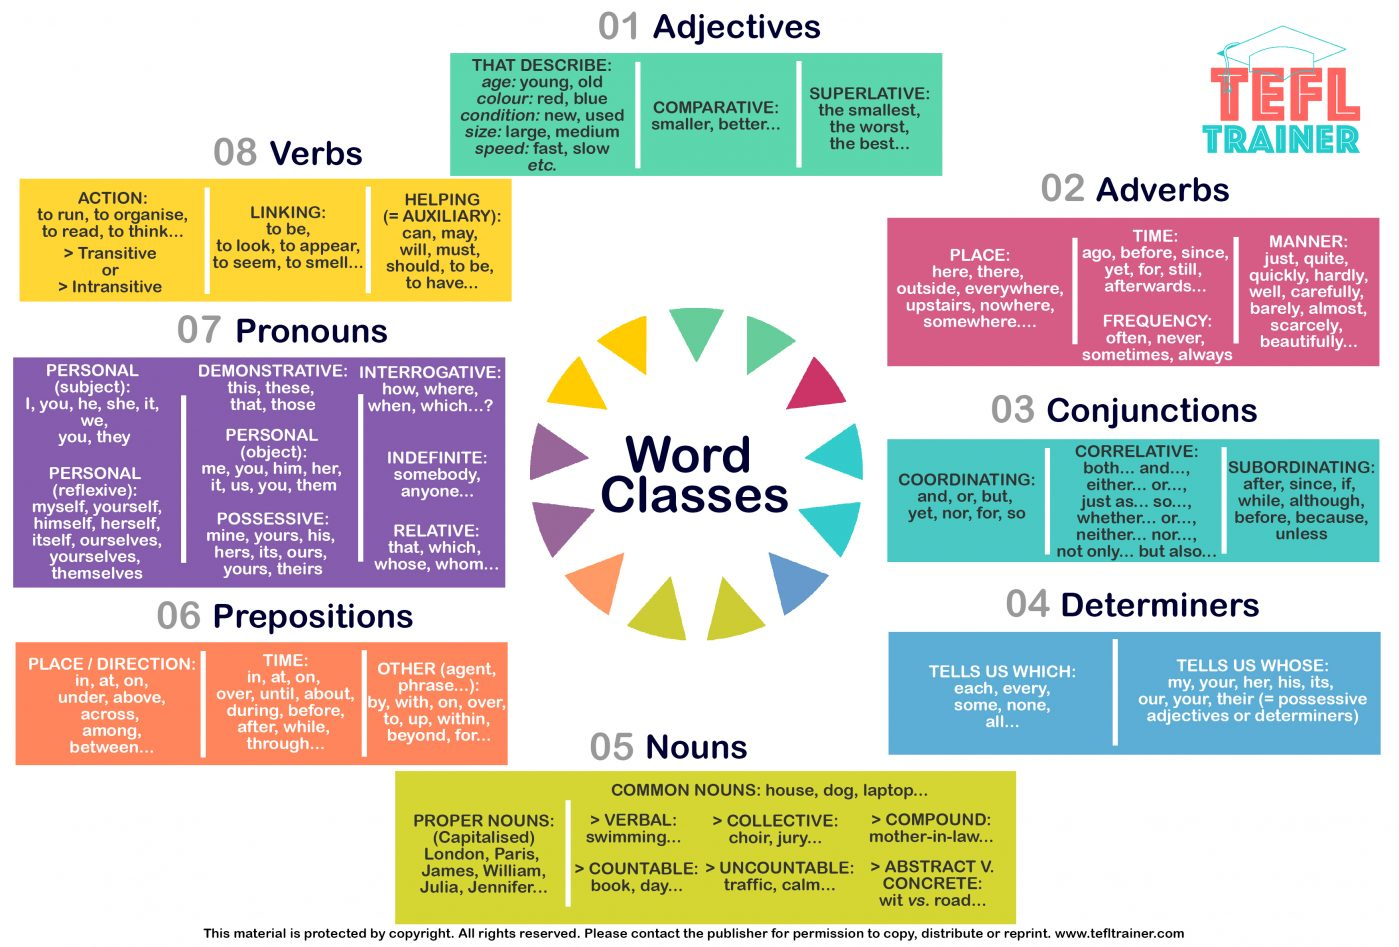 Word Classes by TEFL Trainer